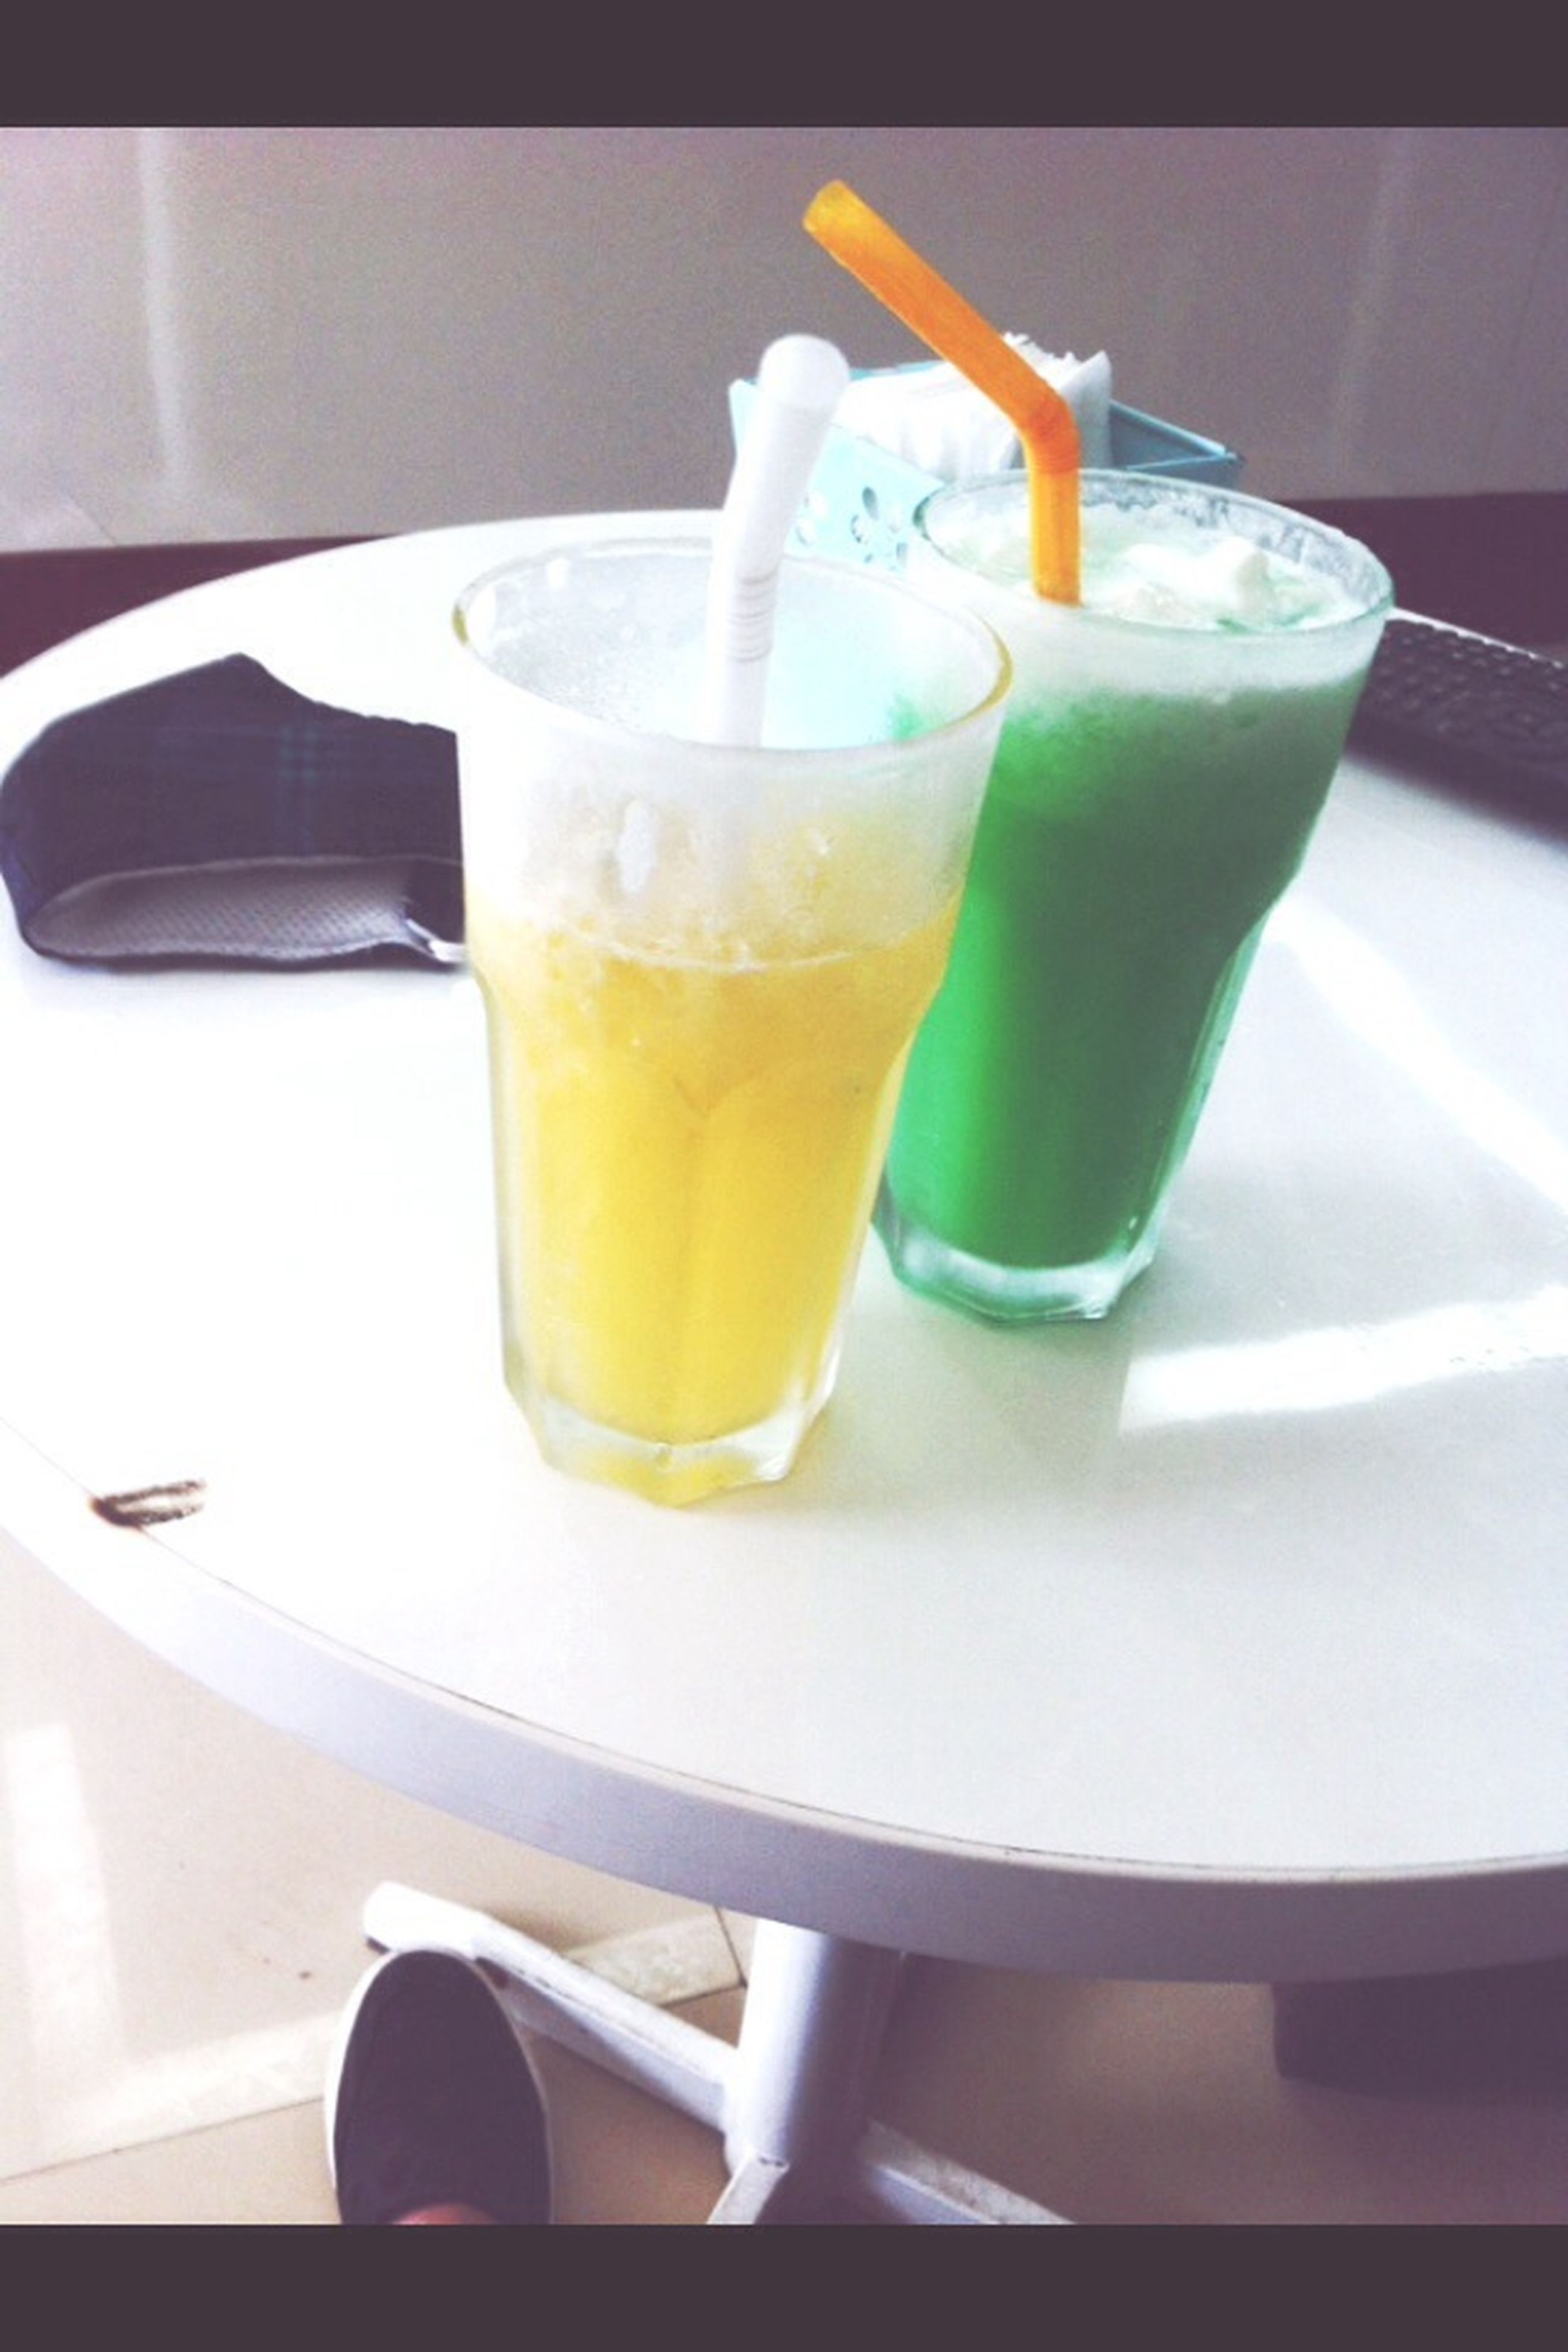 food and drink, drink, refreshment, freshness, table, drinking glass, indoors, still life, healthy eating, close-up, drinking straw, food, juice, glass, glass - material, alcohol, cocktail, no people, high angle view, serving size